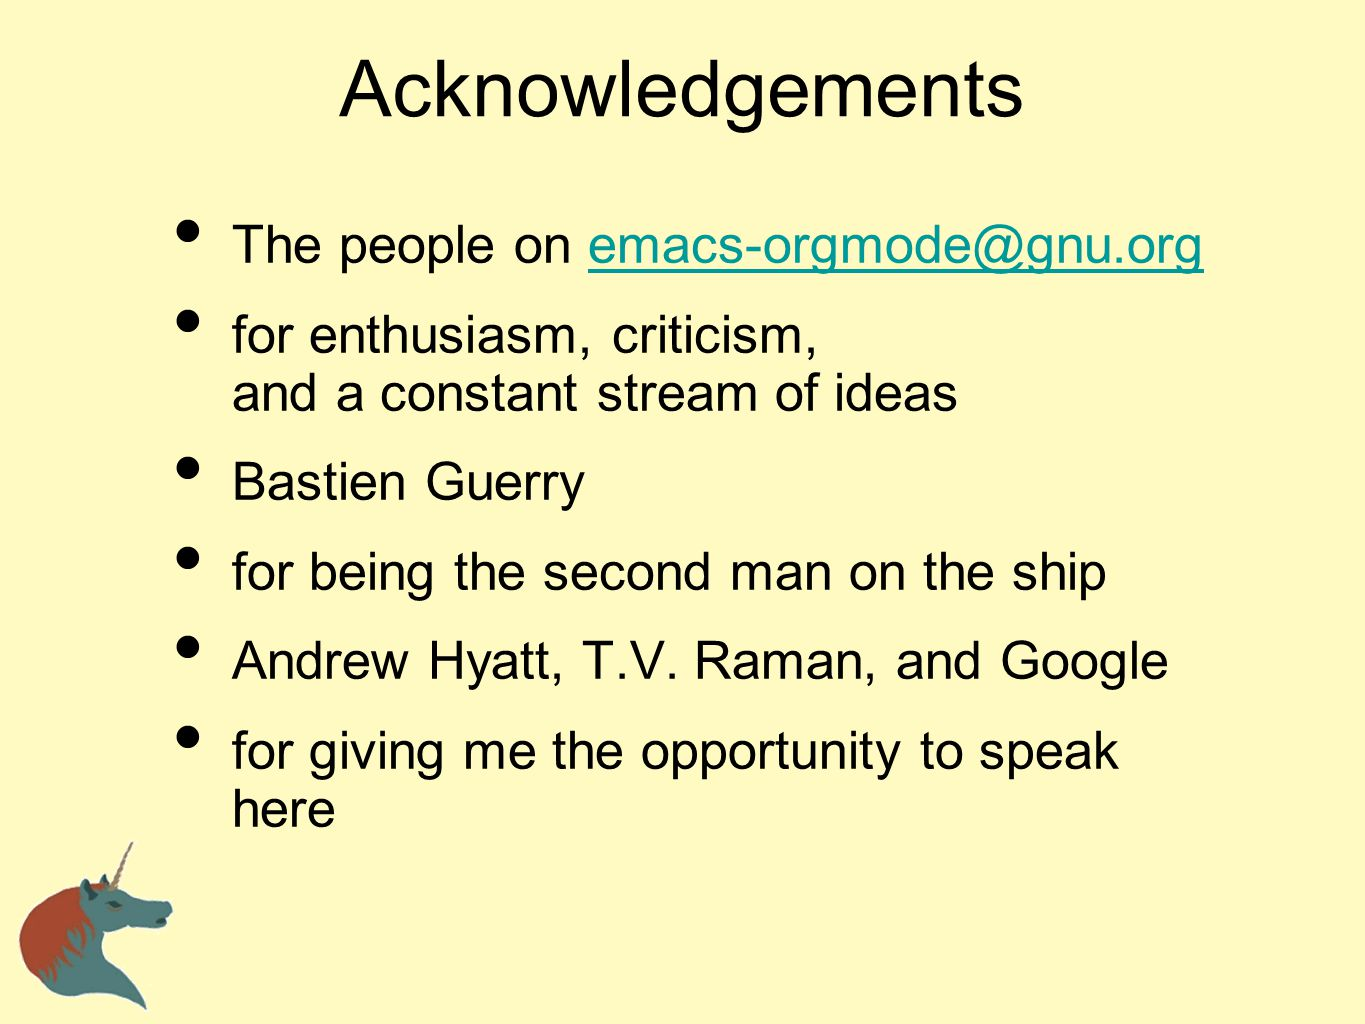 Acknowledgements The people on emacs-orgmode@gnu.orgemacs-orgmode@gnu.org for enthusiasm, criticism, and a constant stream of ideas Bastien Guerry for